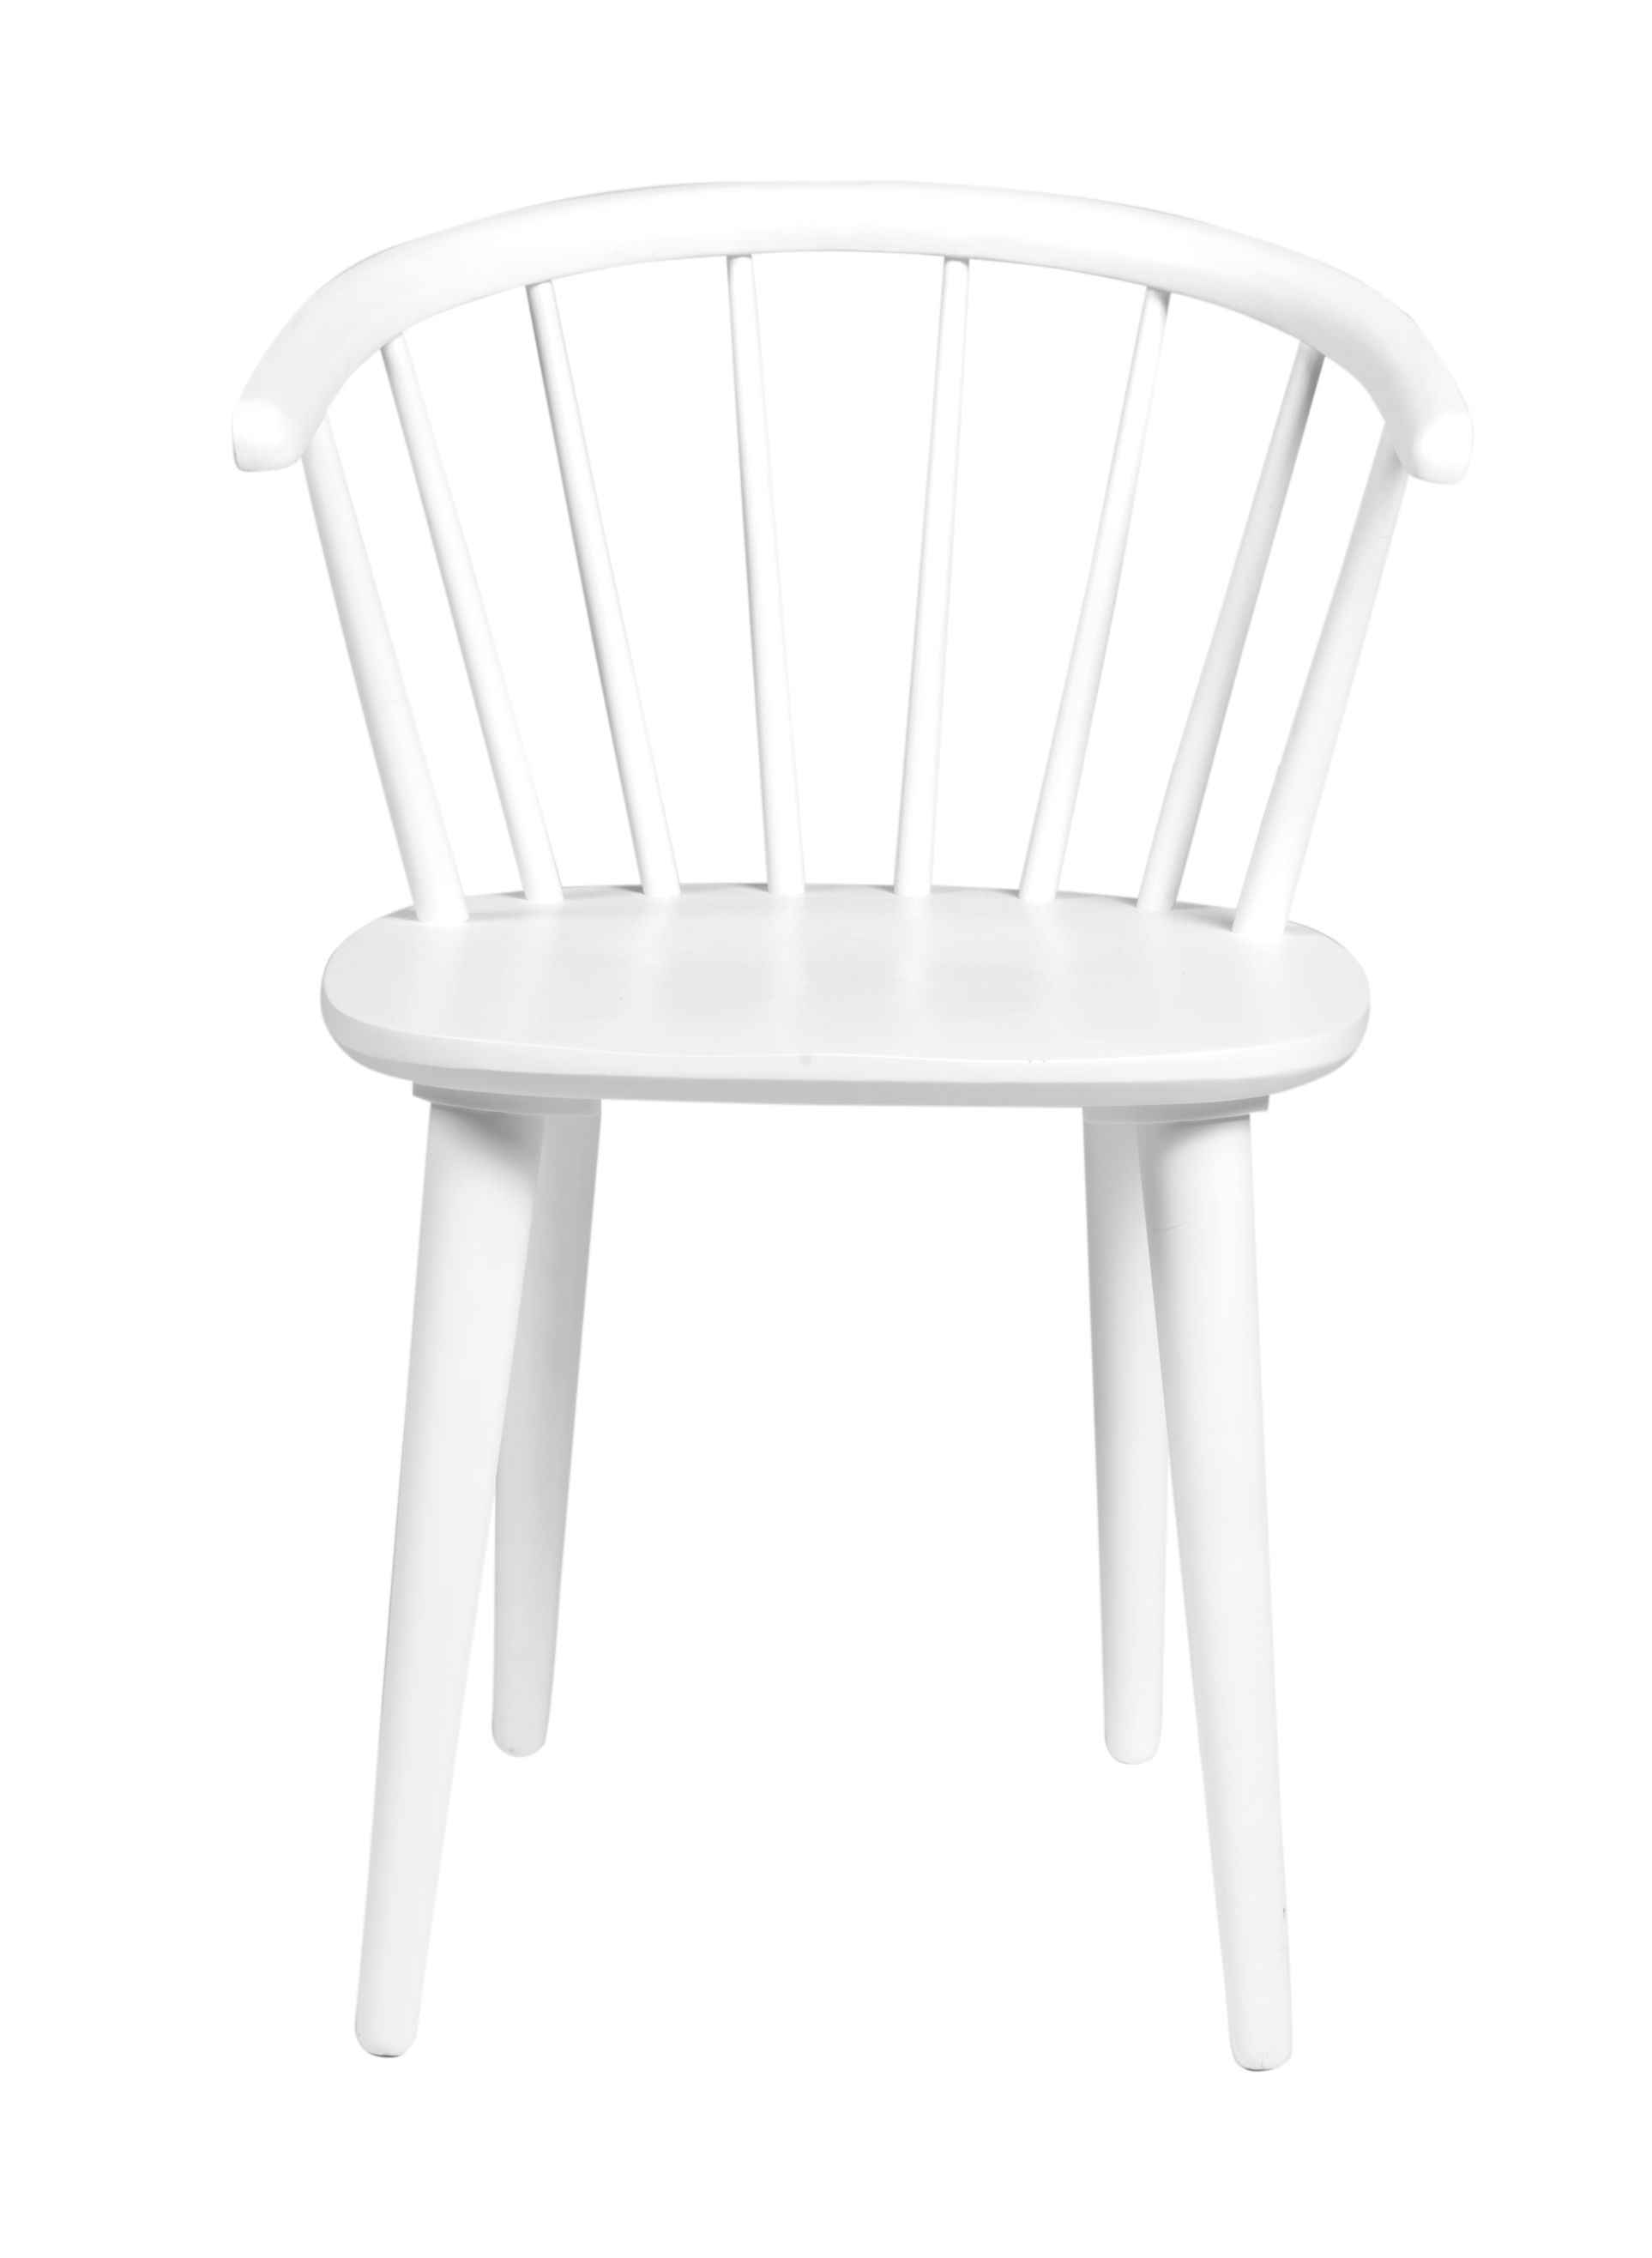 DAWSONE Carmen White Chair